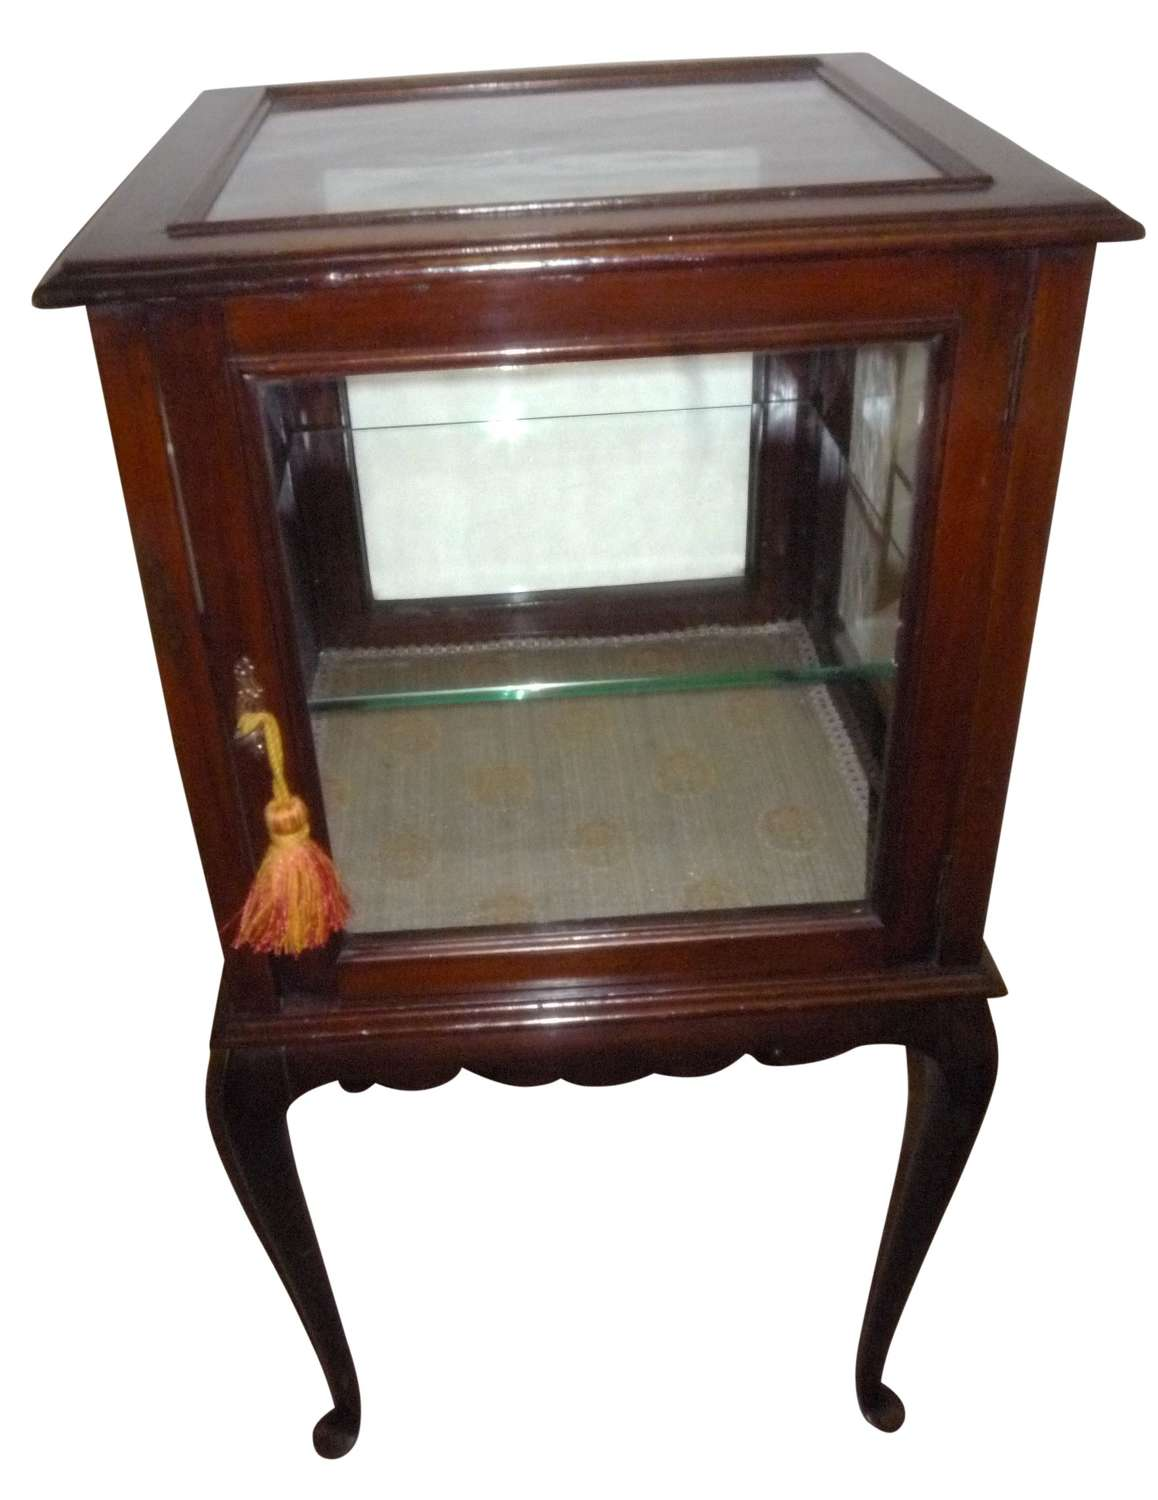 A square Edwardian mahogany display cabinet with glass shelf c 1915